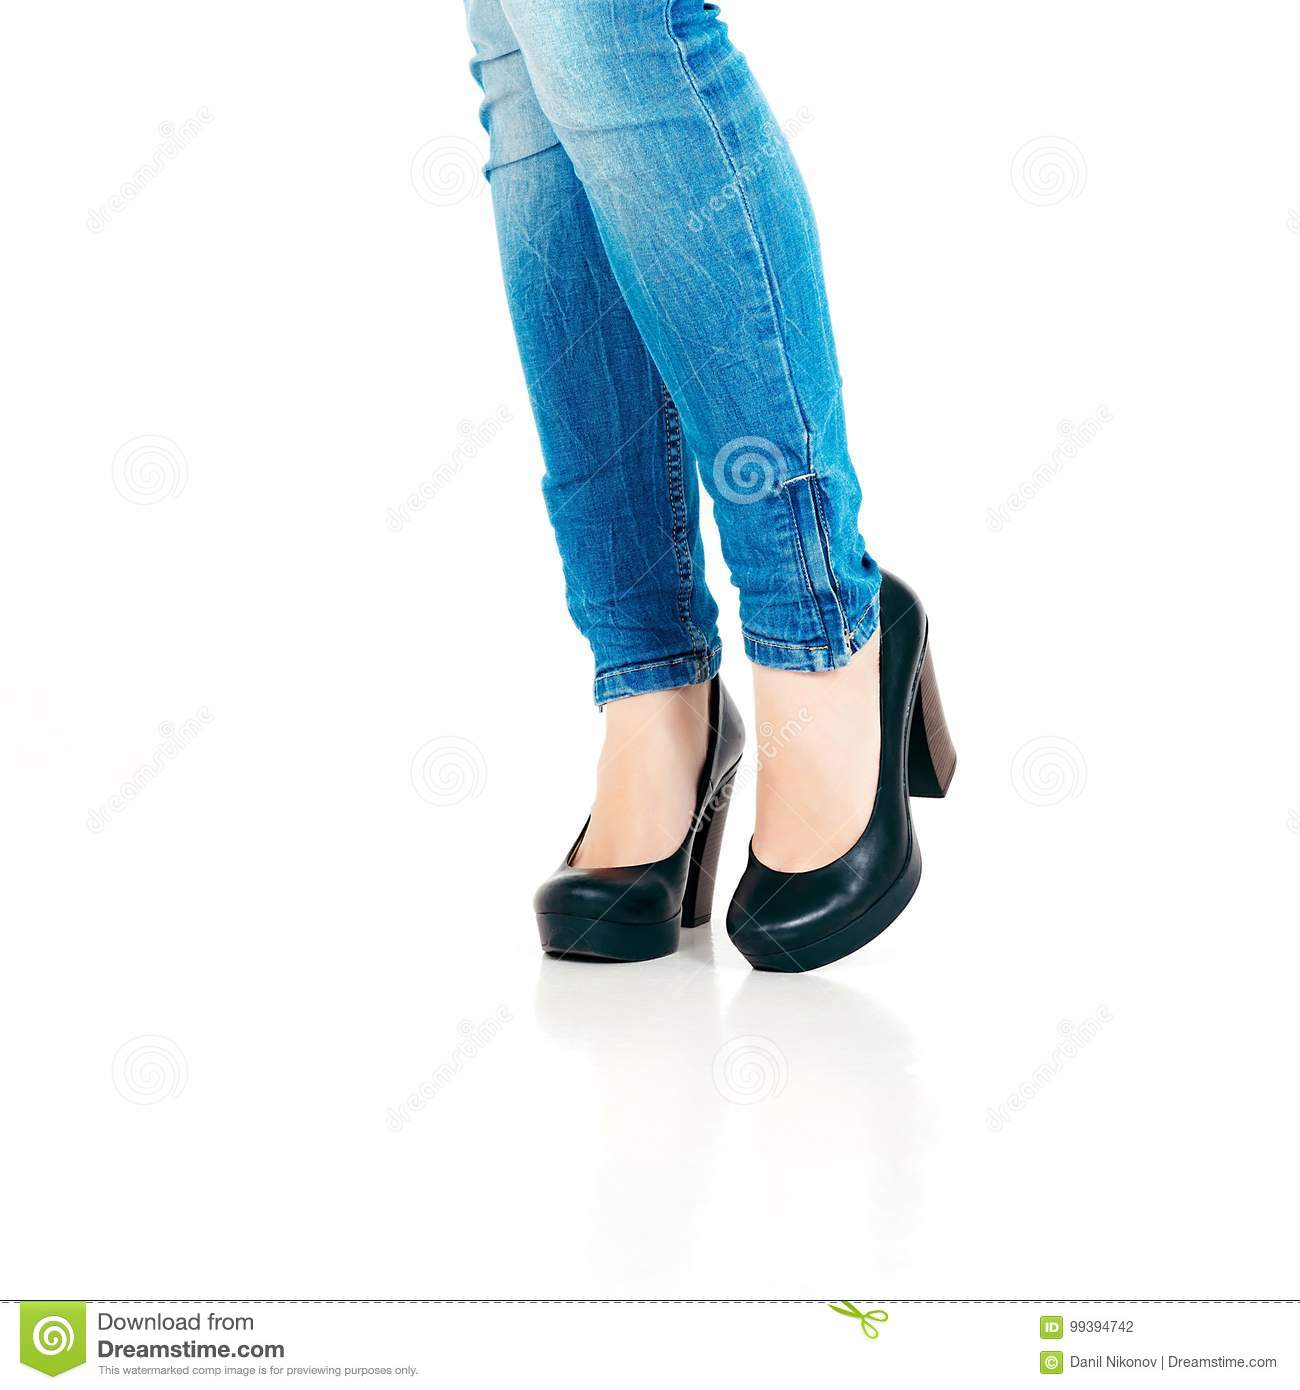 Valuable information skinny legs high heels can recommend